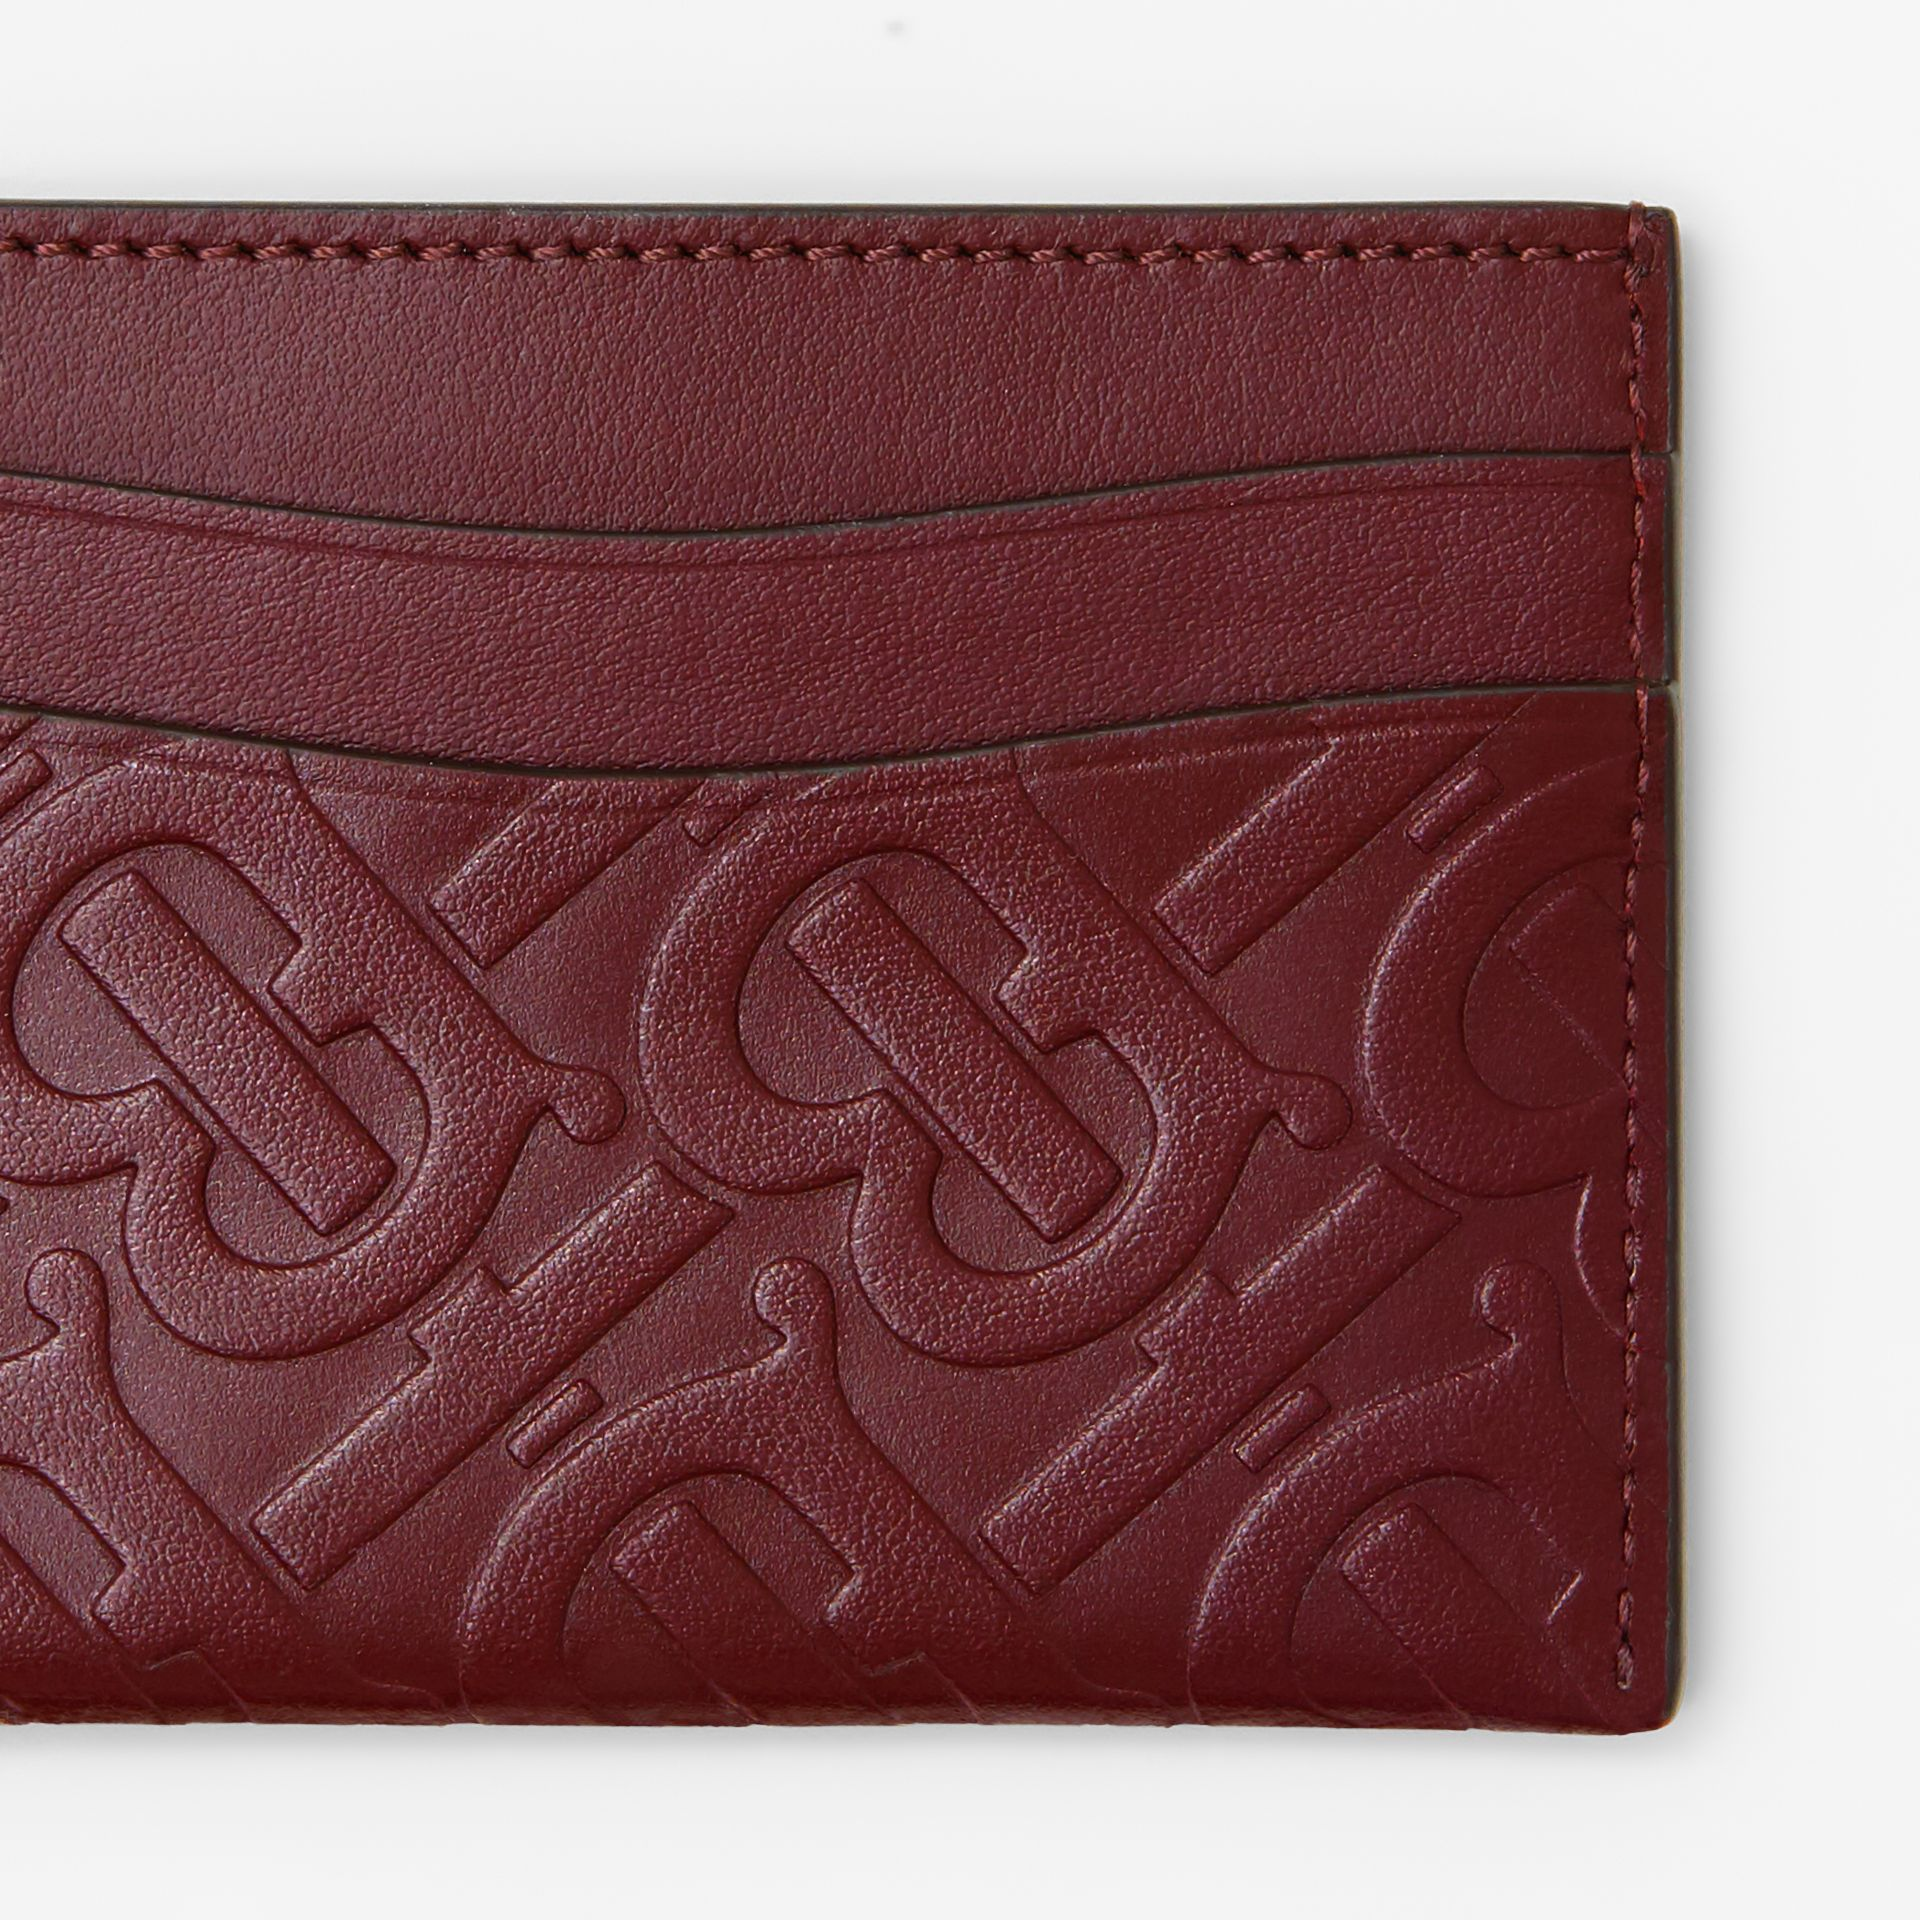 Monogram Leather Card Case in Oxblood - Women | Burberry - gallery image 1